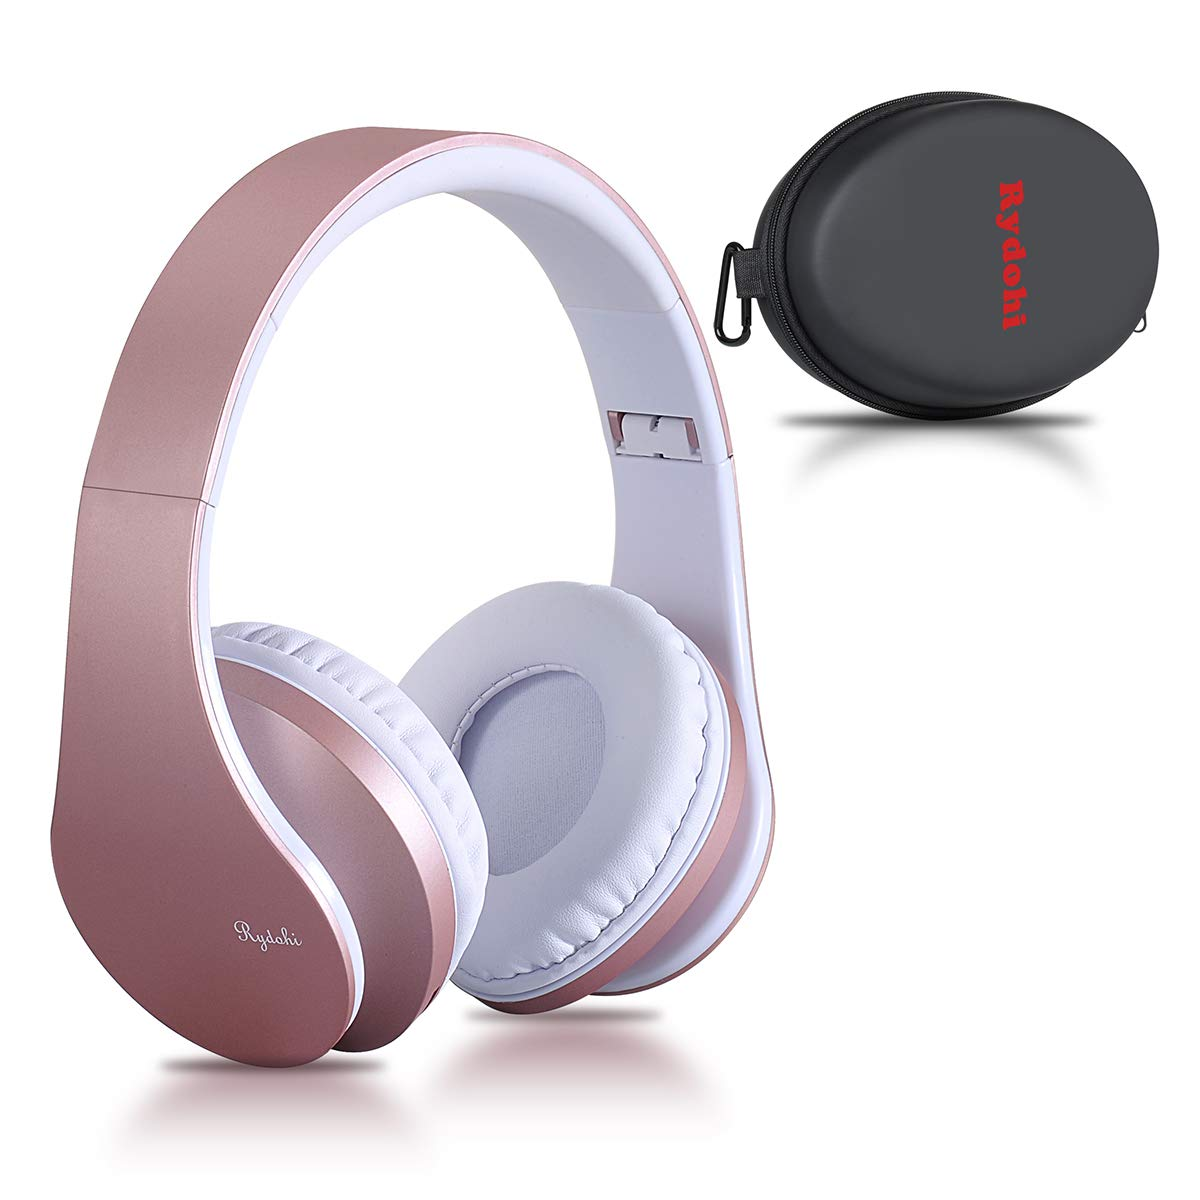 Bluetooth Headphones Over Ear, Rydohi Wireless Stereo Headset with Deep Bass, Foldable and Lightweight, Wired and Wireless Modes Built in Mic for Cell Phone, TV, PC- Rose Gold